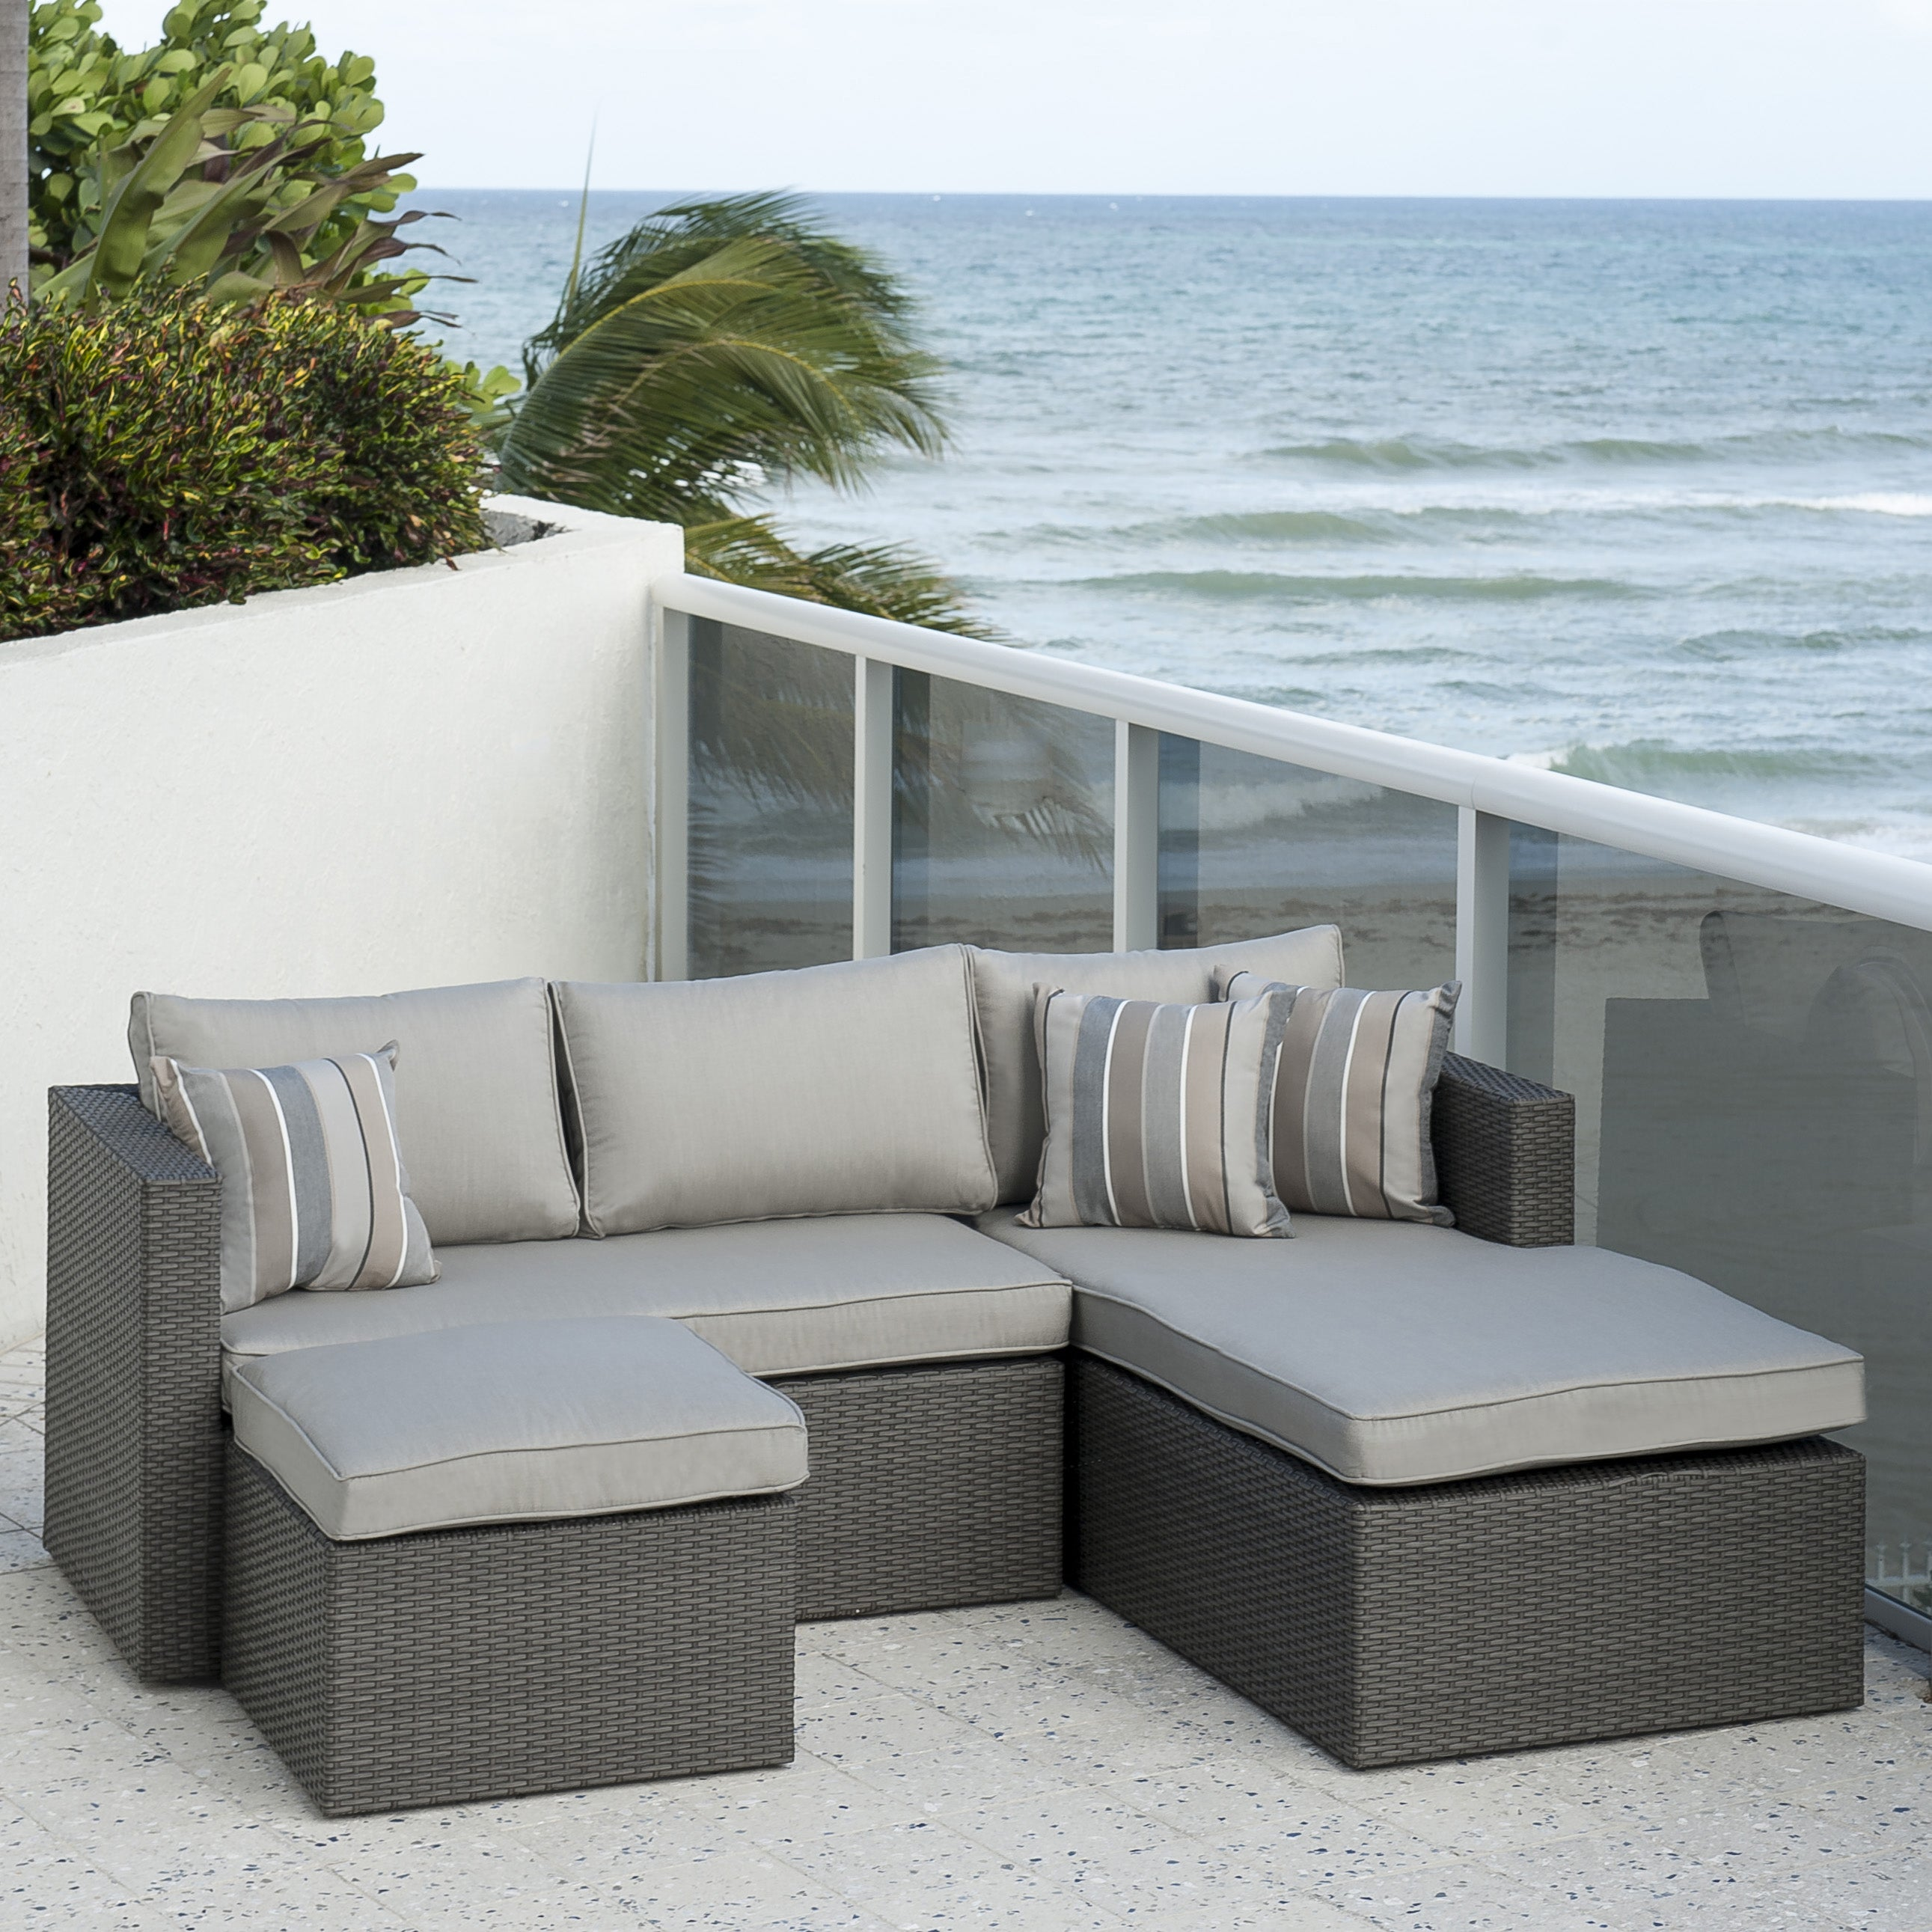 sanoma outdoor sunbrella camelepf sonoma patio cushions sectional with products w wicker furniture resin cushion club